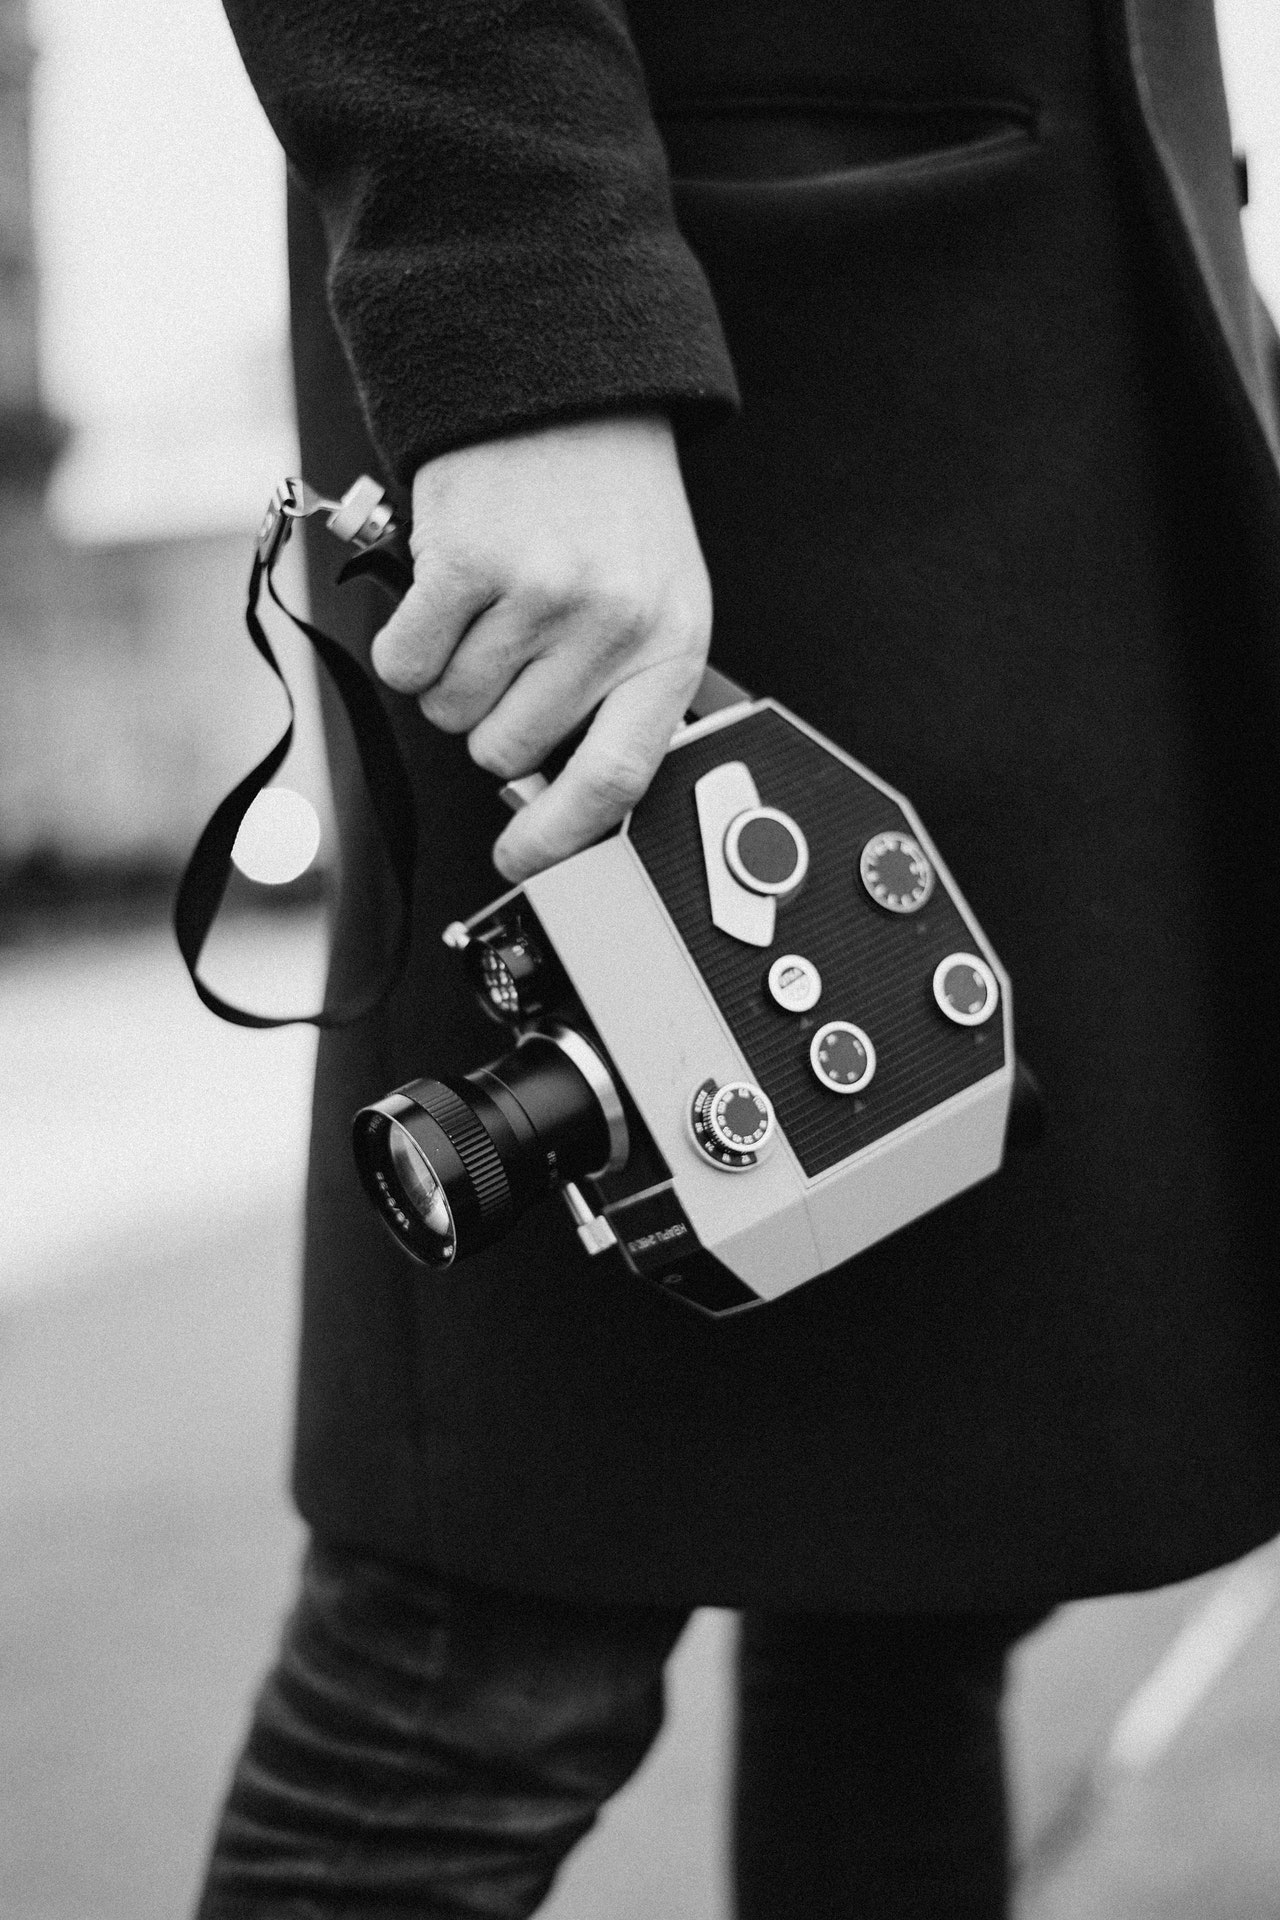 Grayscale photo of a person holding an analog camera. Photo courtesy of Cottonbro on Pexels.